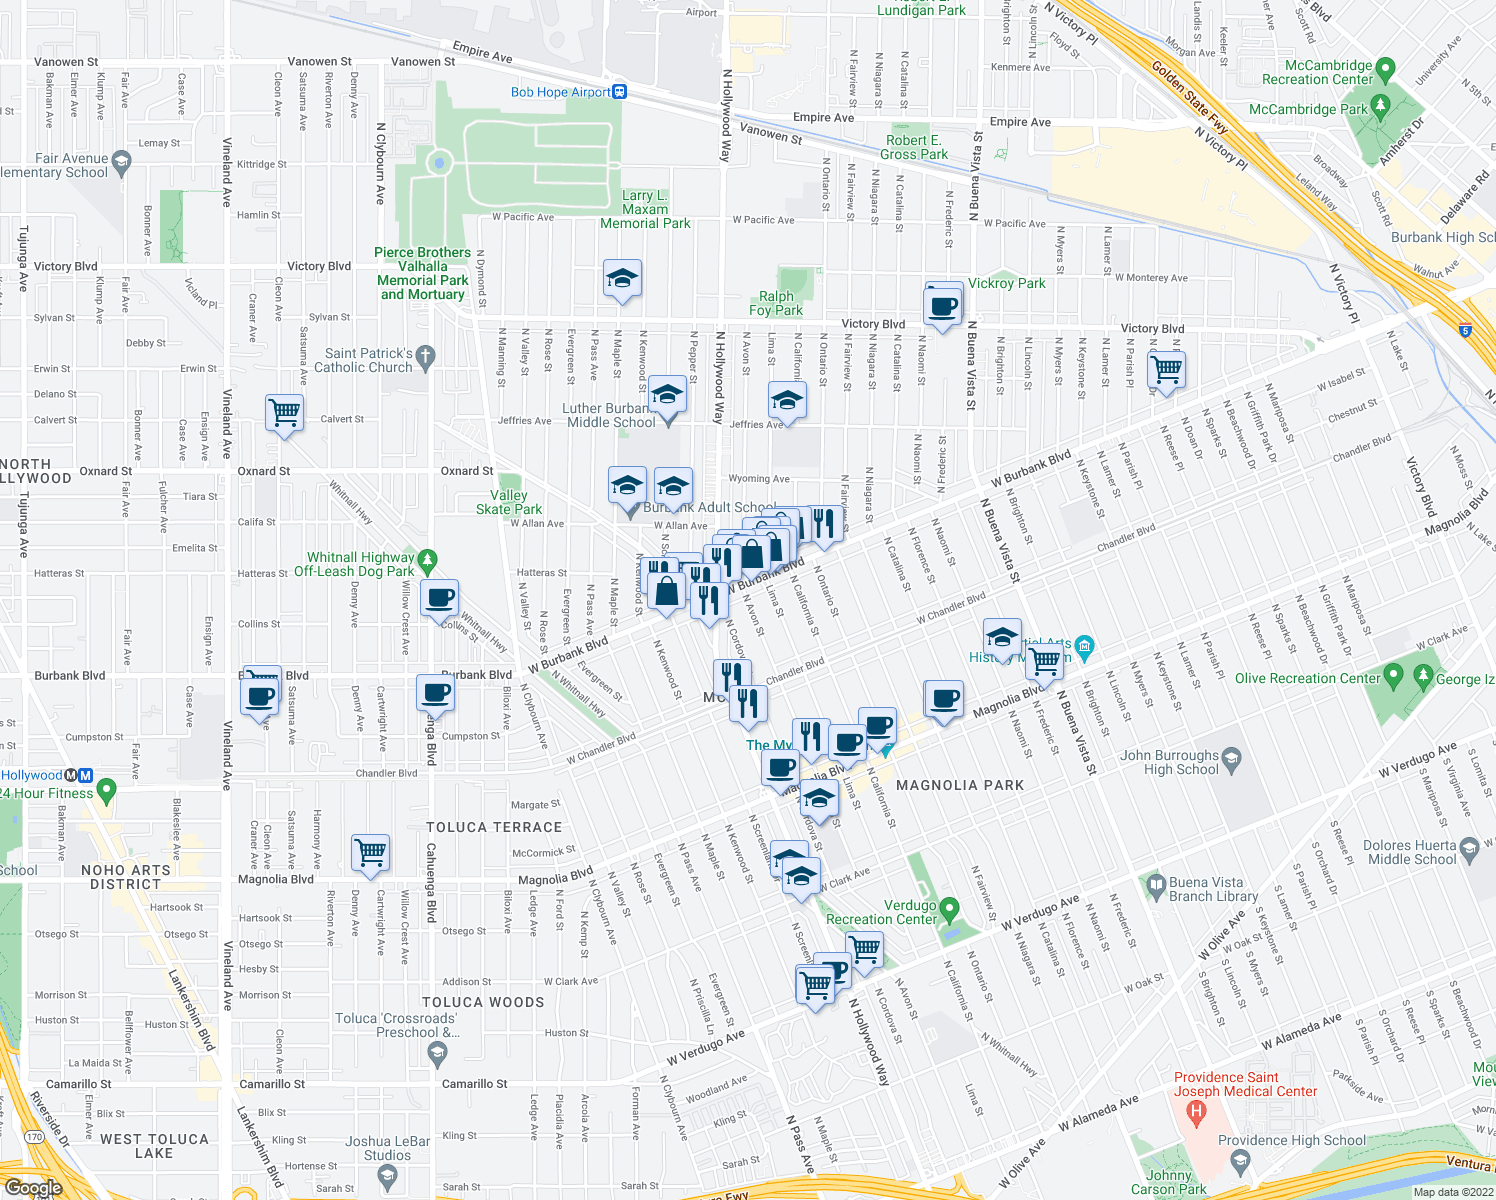 map of restaurants, bars, coffee shops, grocery stores, and more near 1340 N Avon St in Burbank